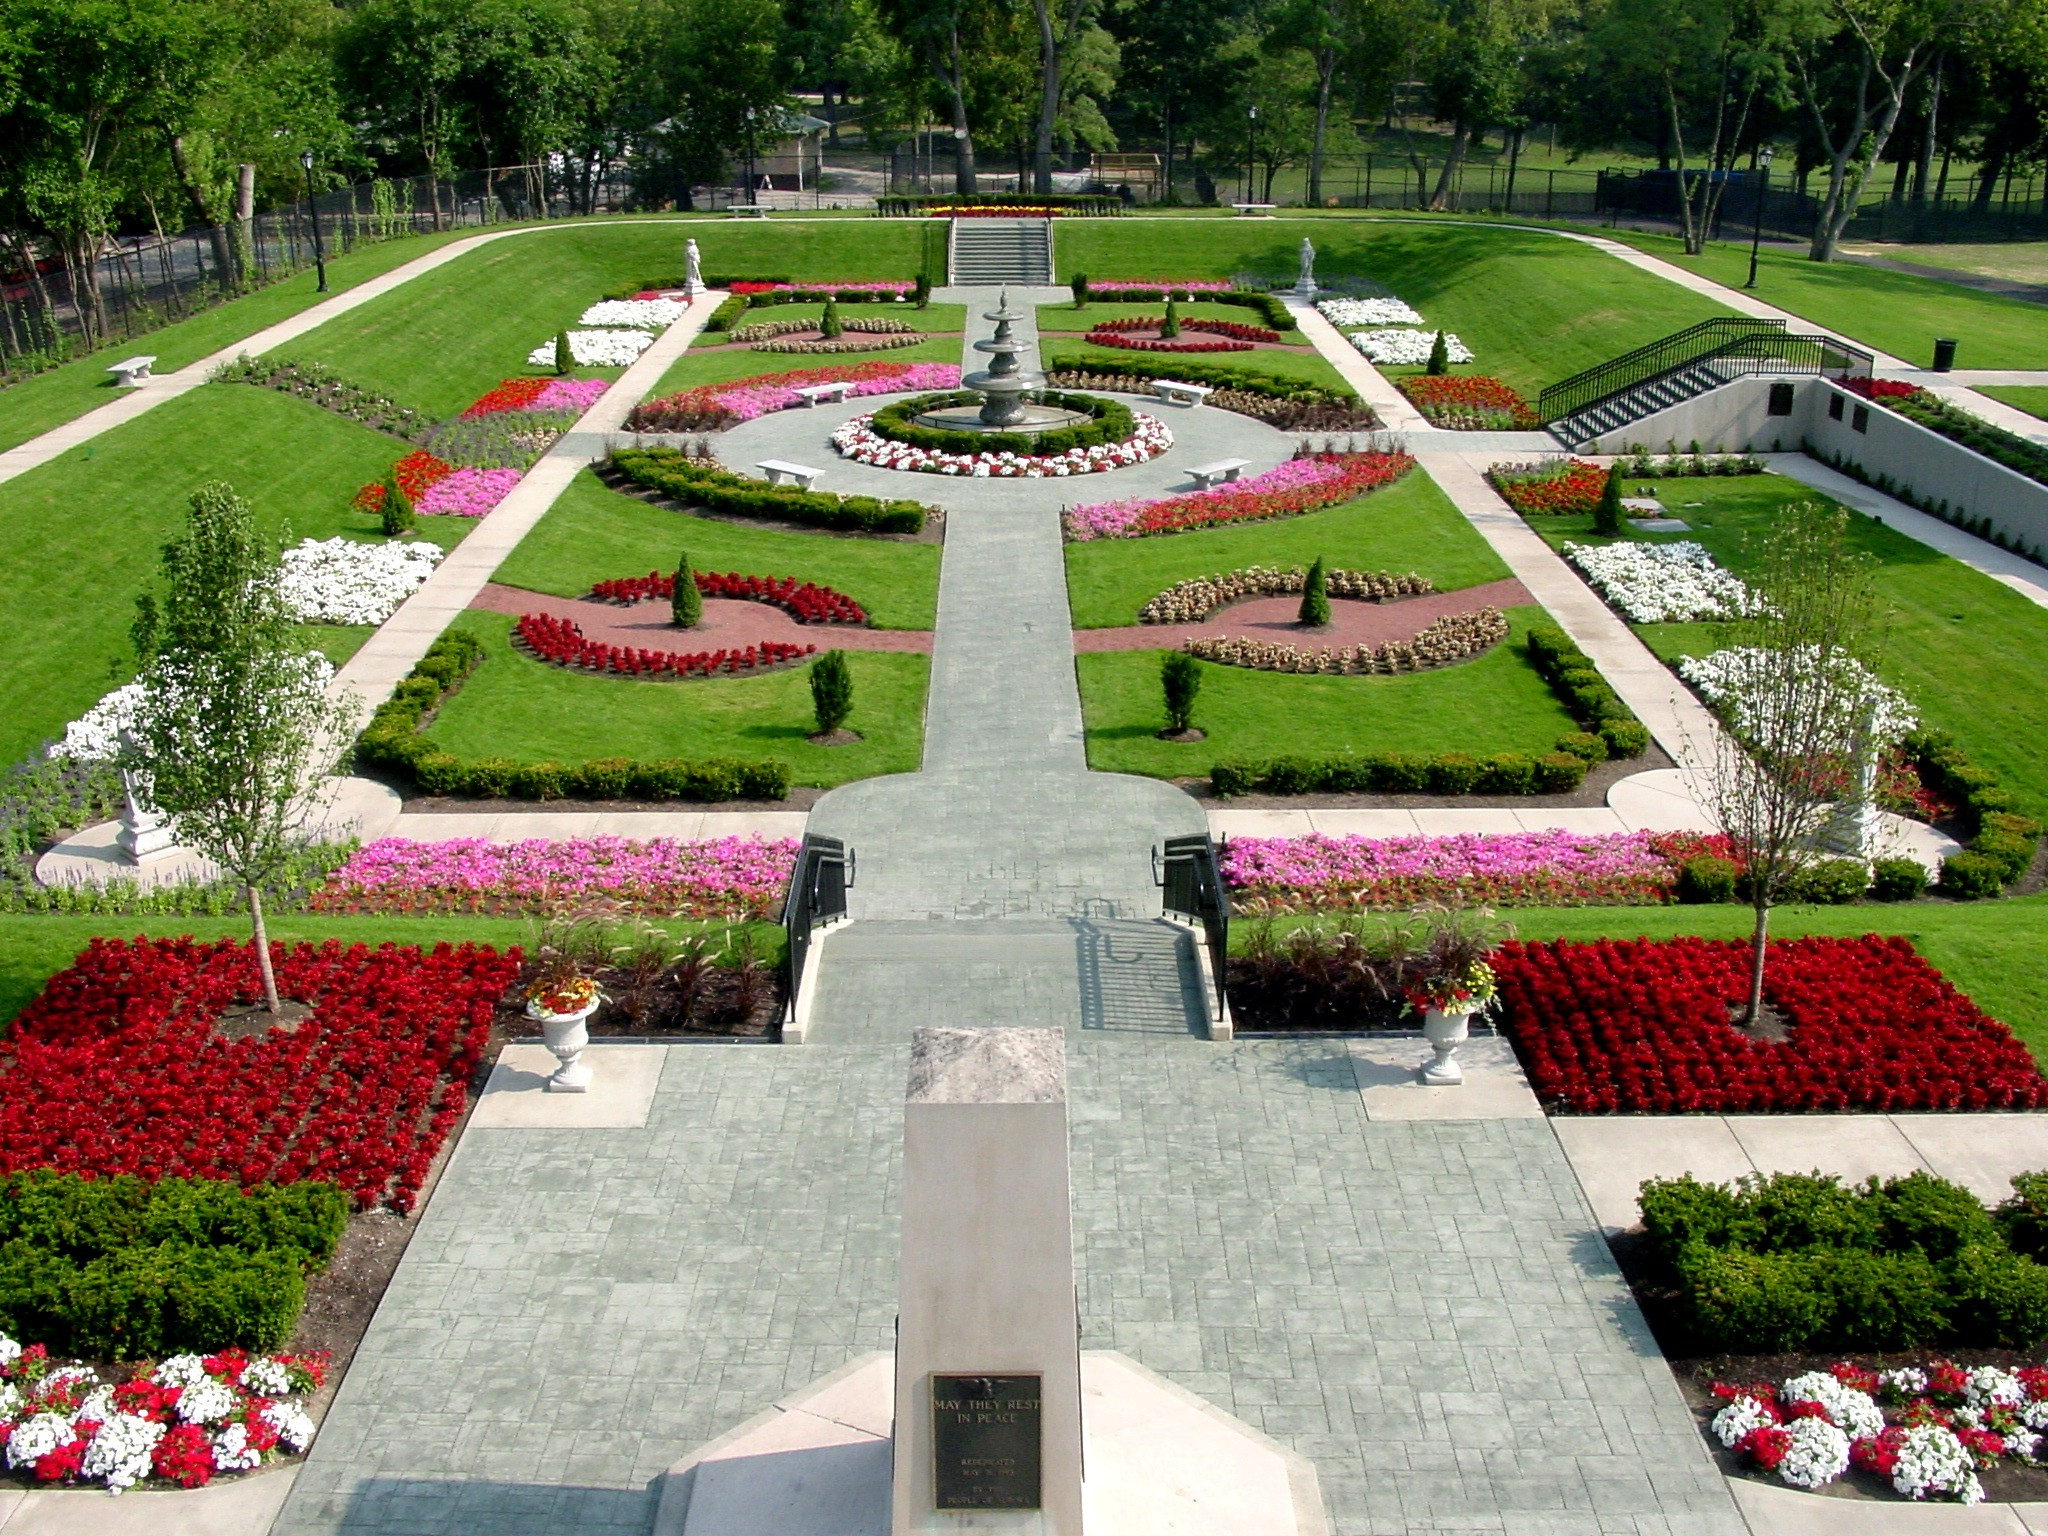 public-gardens-in-illinois-for-a-road-trip-2020